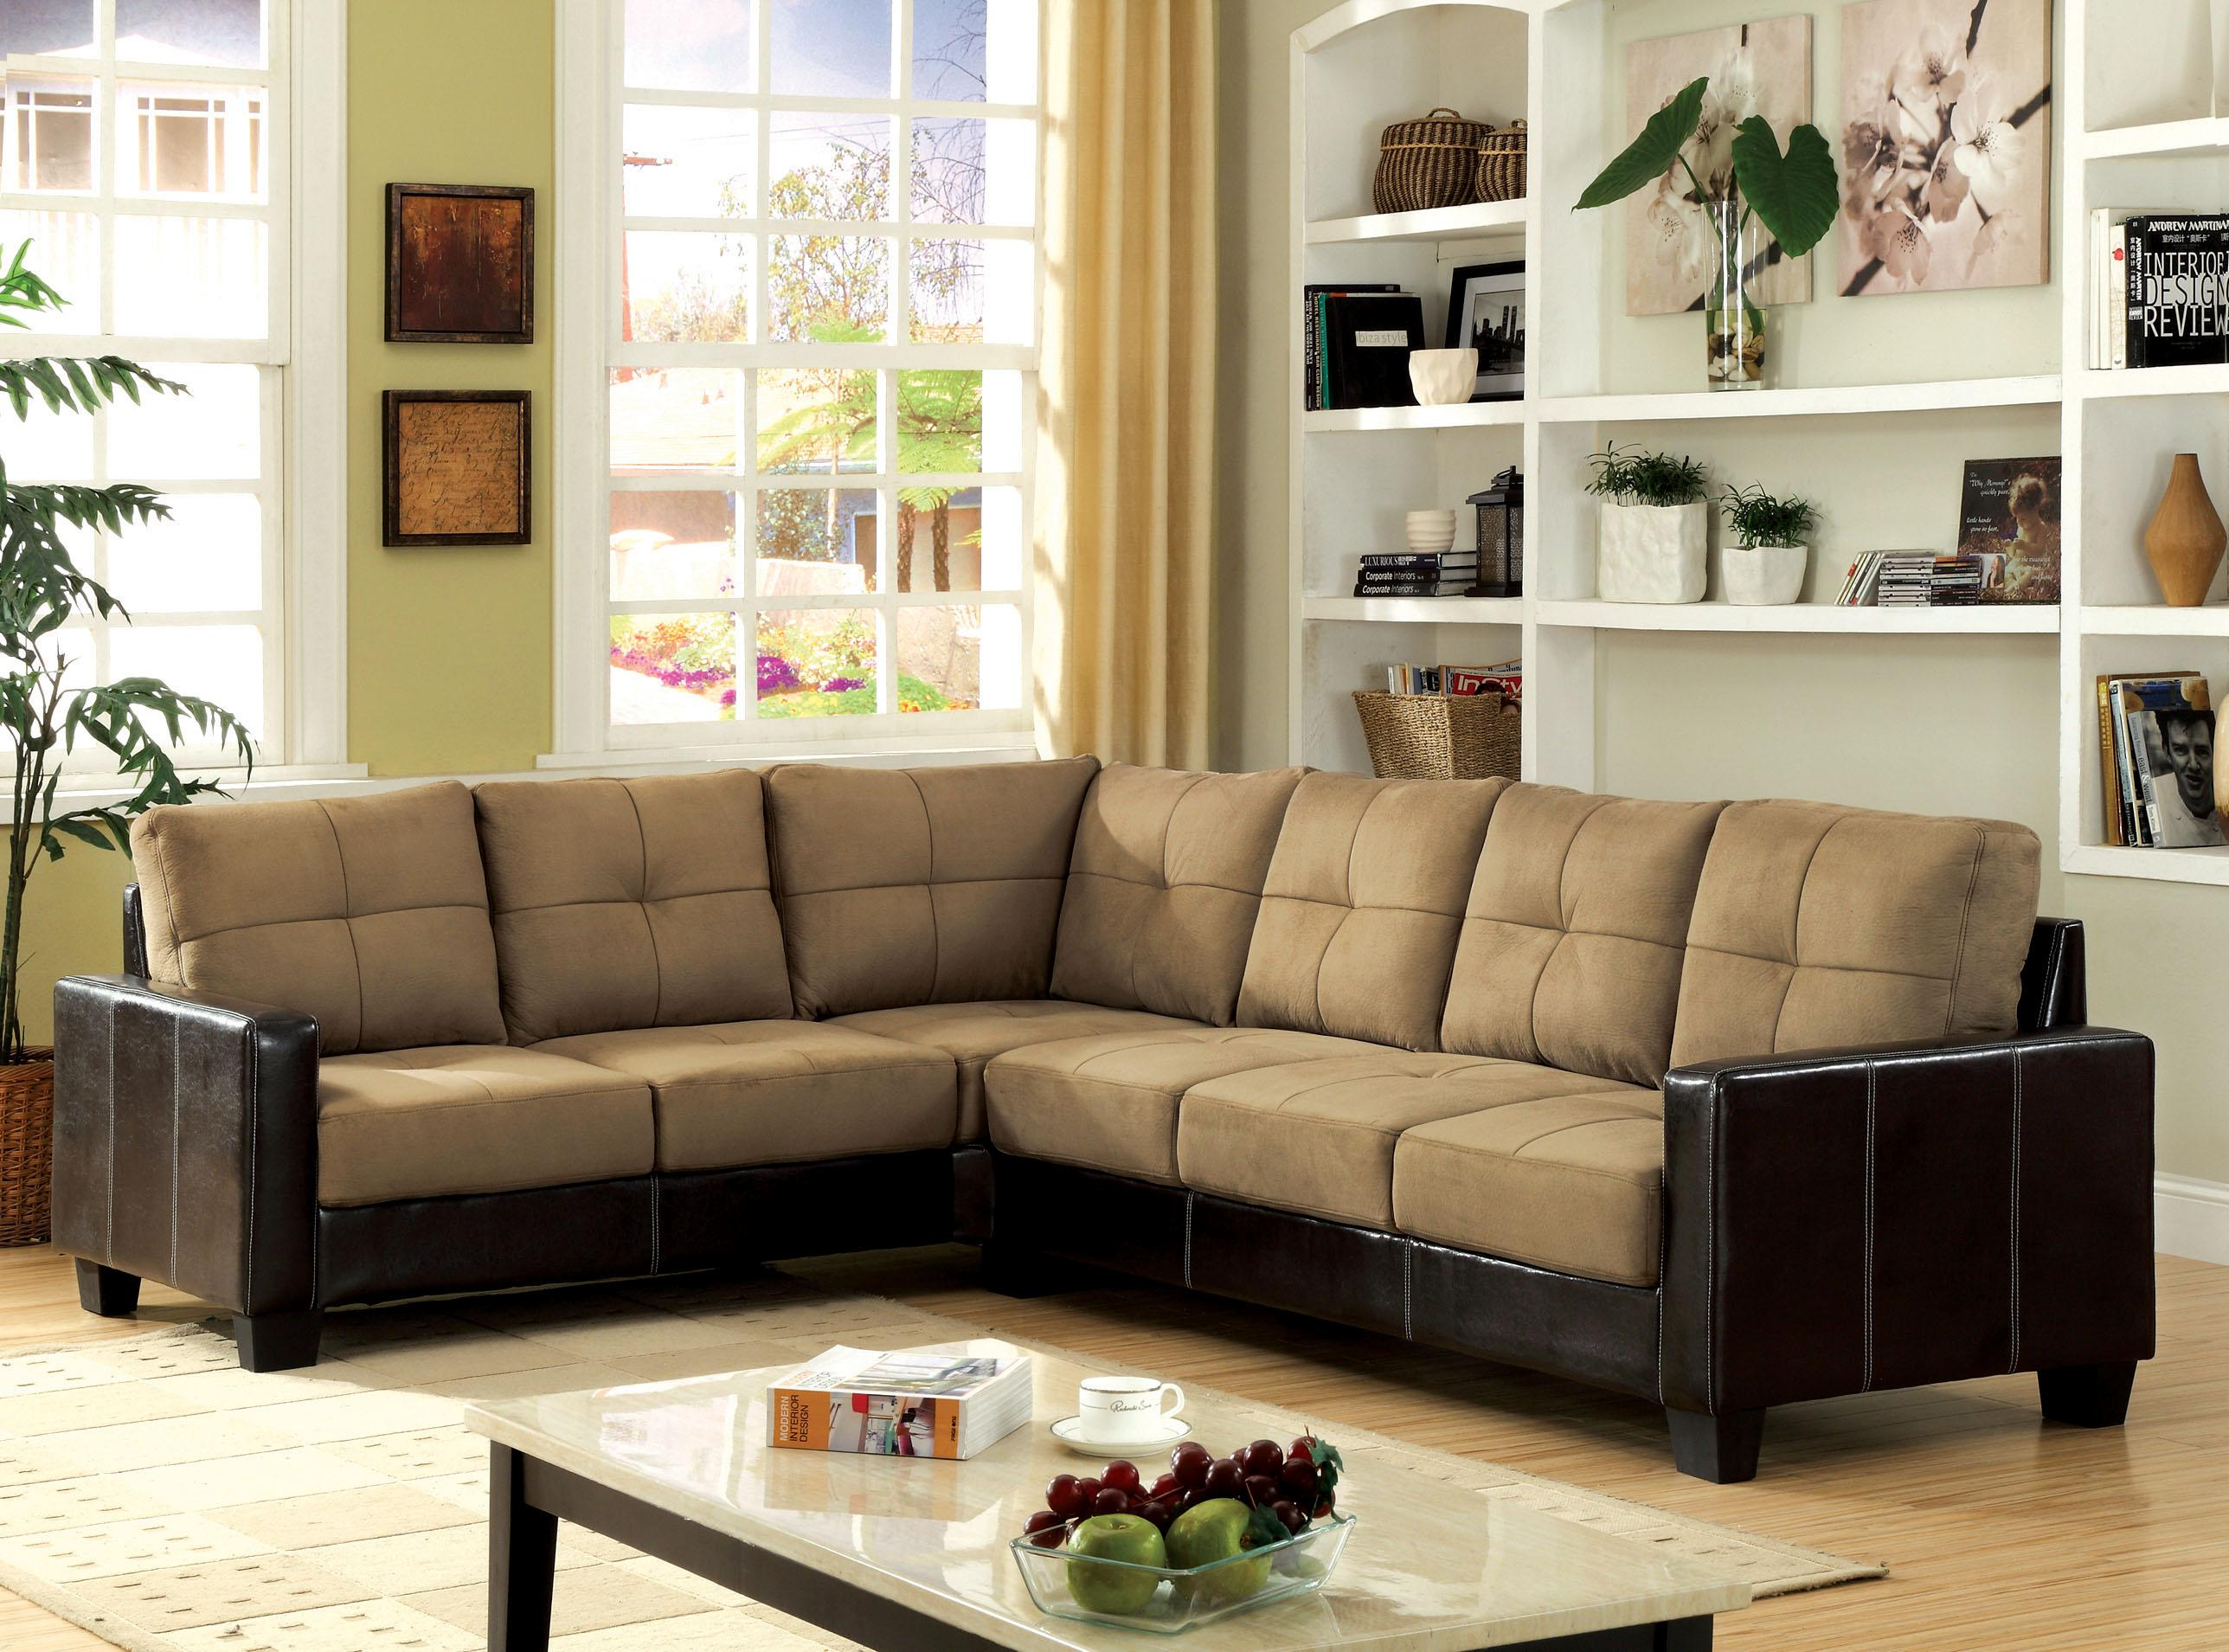 Furniture of america microfiber upholstered sectional sofa for Furniture of america